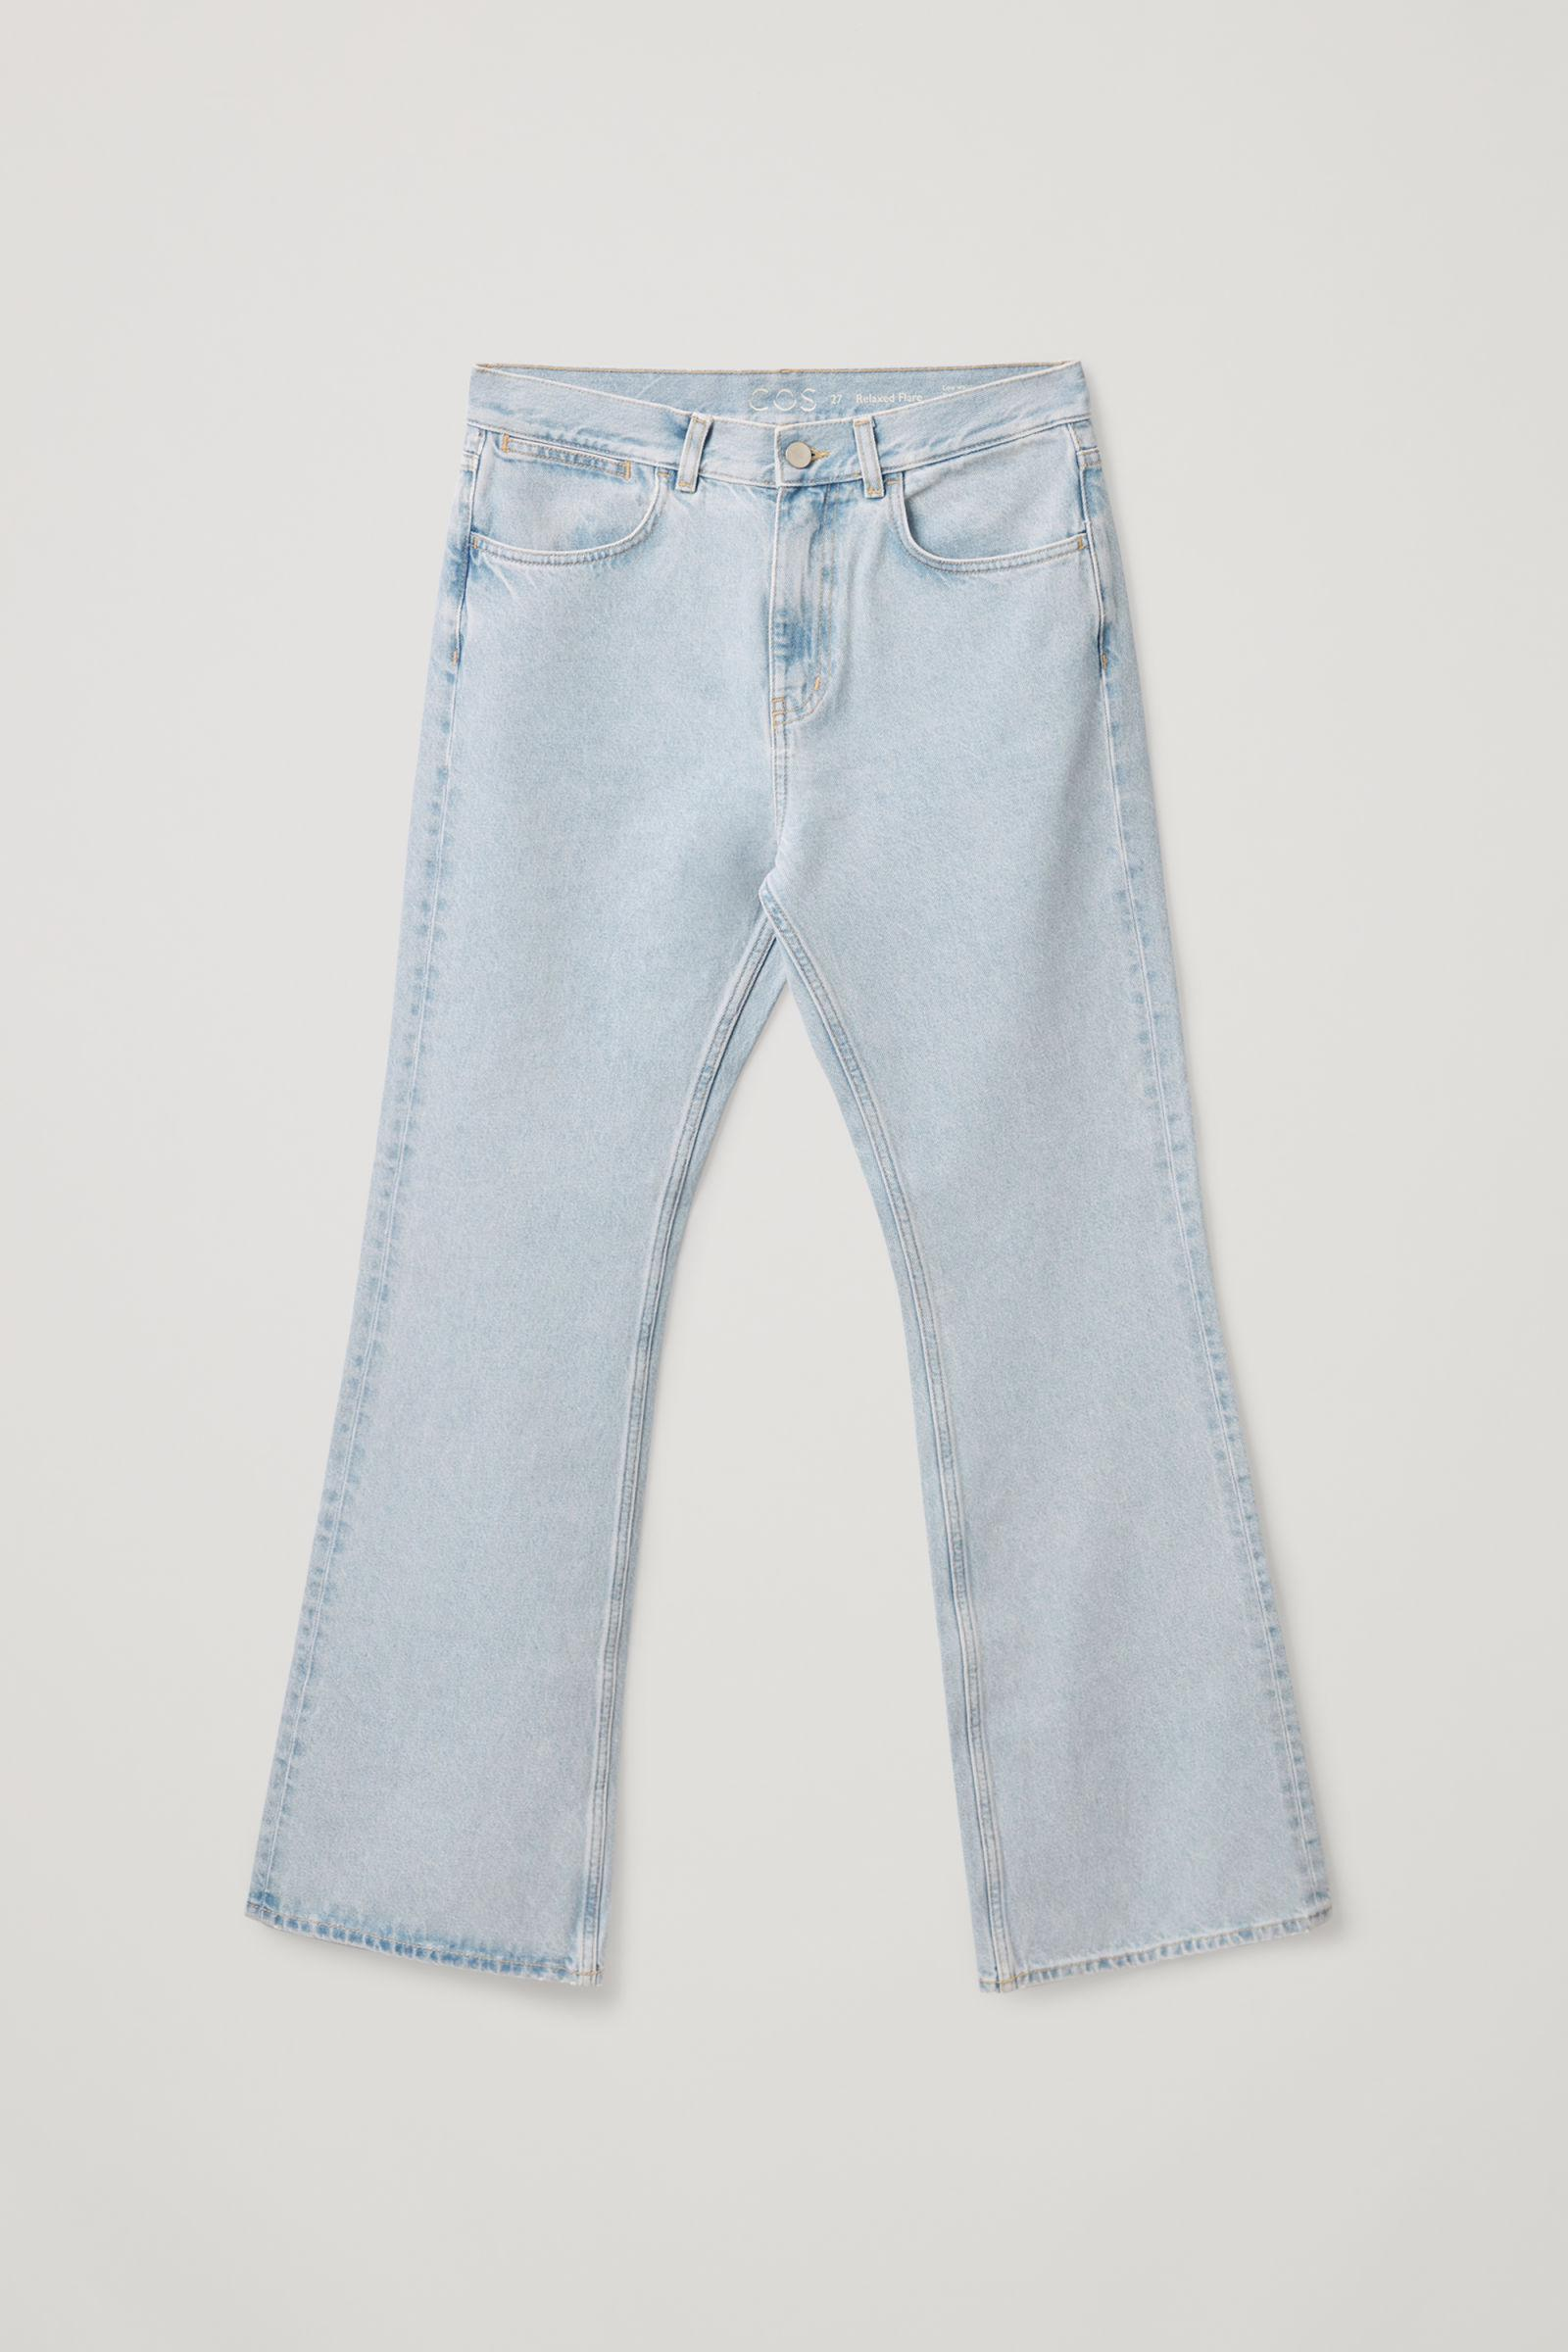 FLARED RECYCLED COTTON DENIM PANTS 7